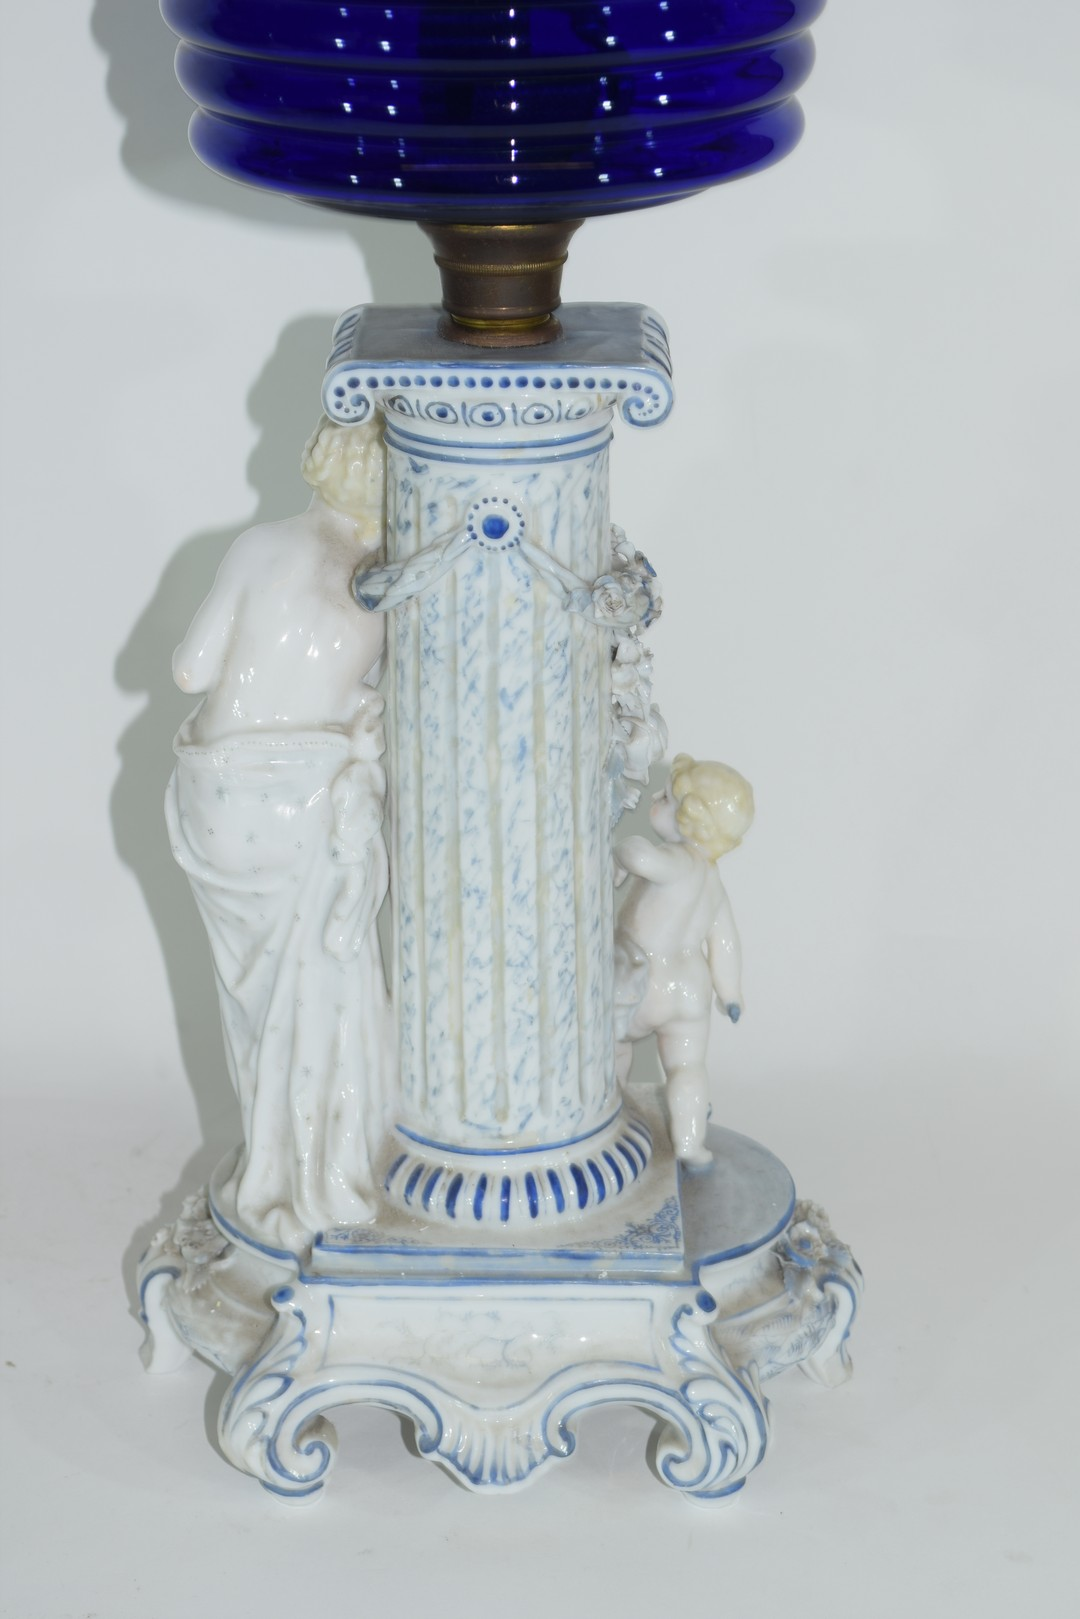 Oil lamp with blue glass reservoir - Image 4 of 6